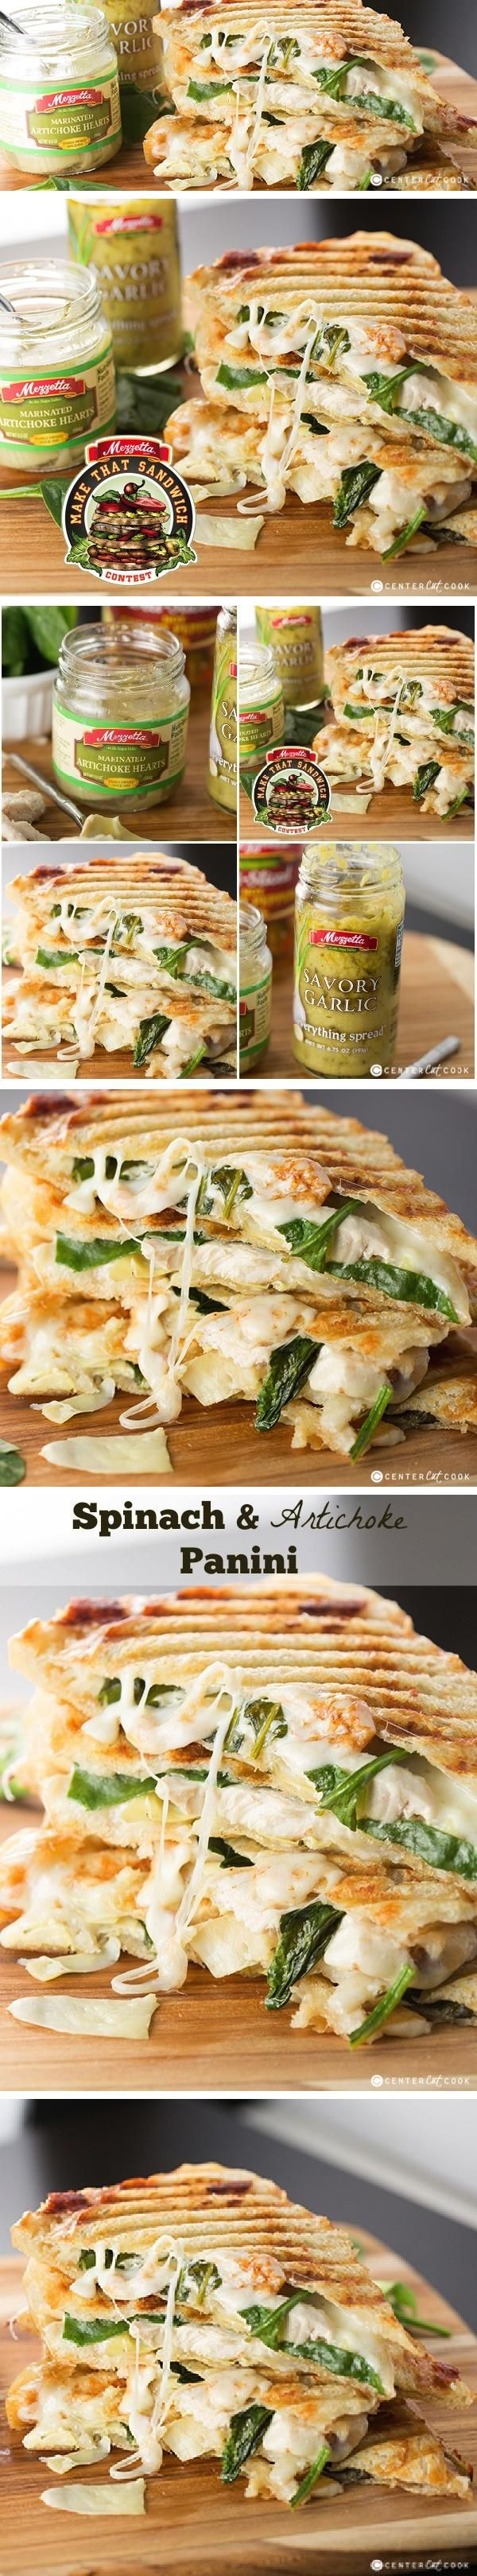 top ideas about burgers sandwiches wraps tacos etc on spinach artichoke panini